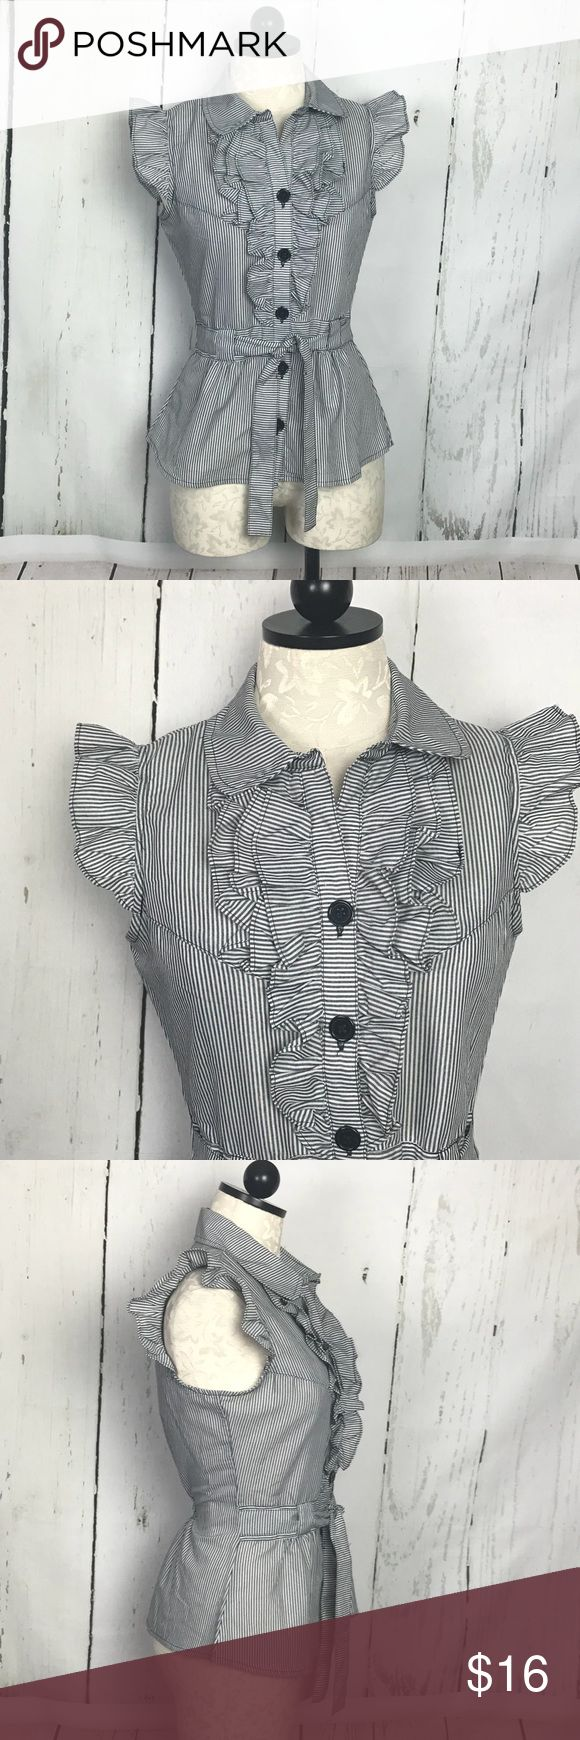 """Feathers Brand Pinstripe Blouse Pretty and perfect to wear to work! Short sleeve, button down blouse with charcoal grey pinstripes - front ruffle smocked at back waist with tie  Great condition!  True to size  25"""" Length from back neckline  18"""" underarms across back  77% cotton, 23% polyester Feathers Tops Blouses"""